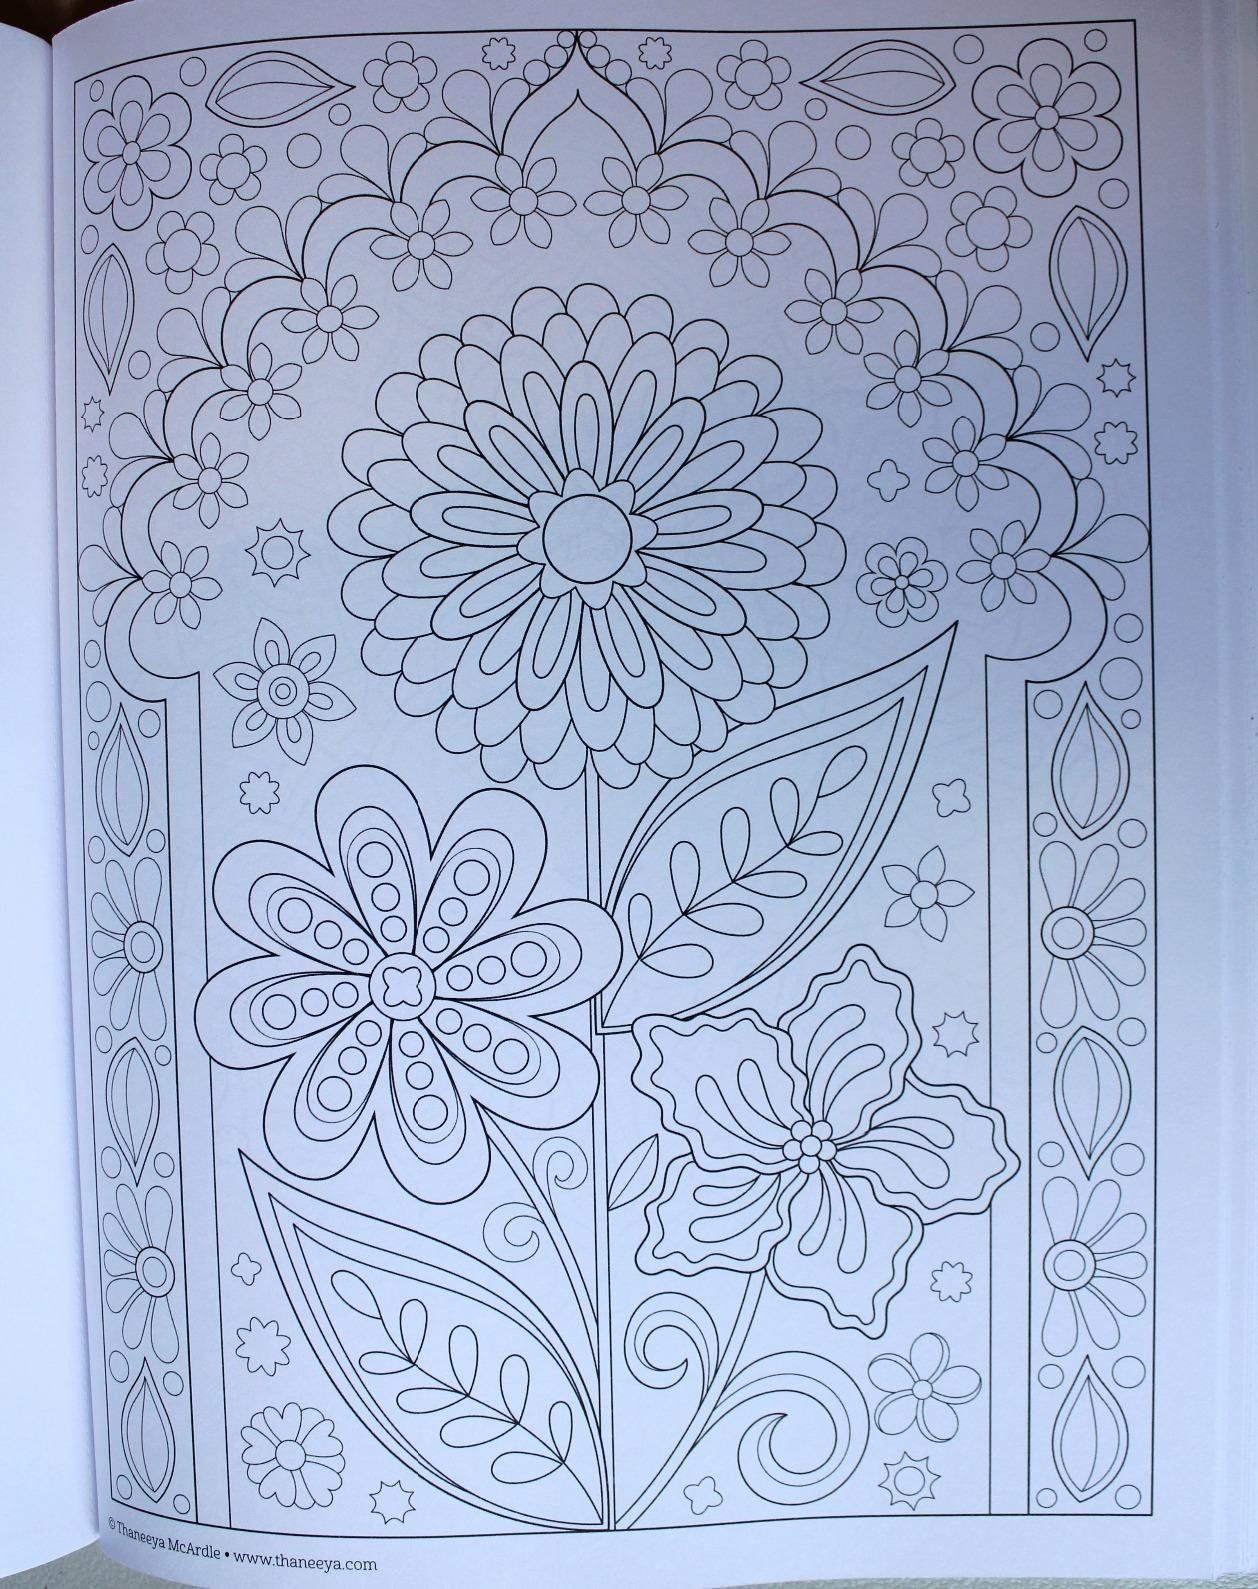 Follow Your Bliss Coloring Book (Coloring Activity Book): Thaneeya ...